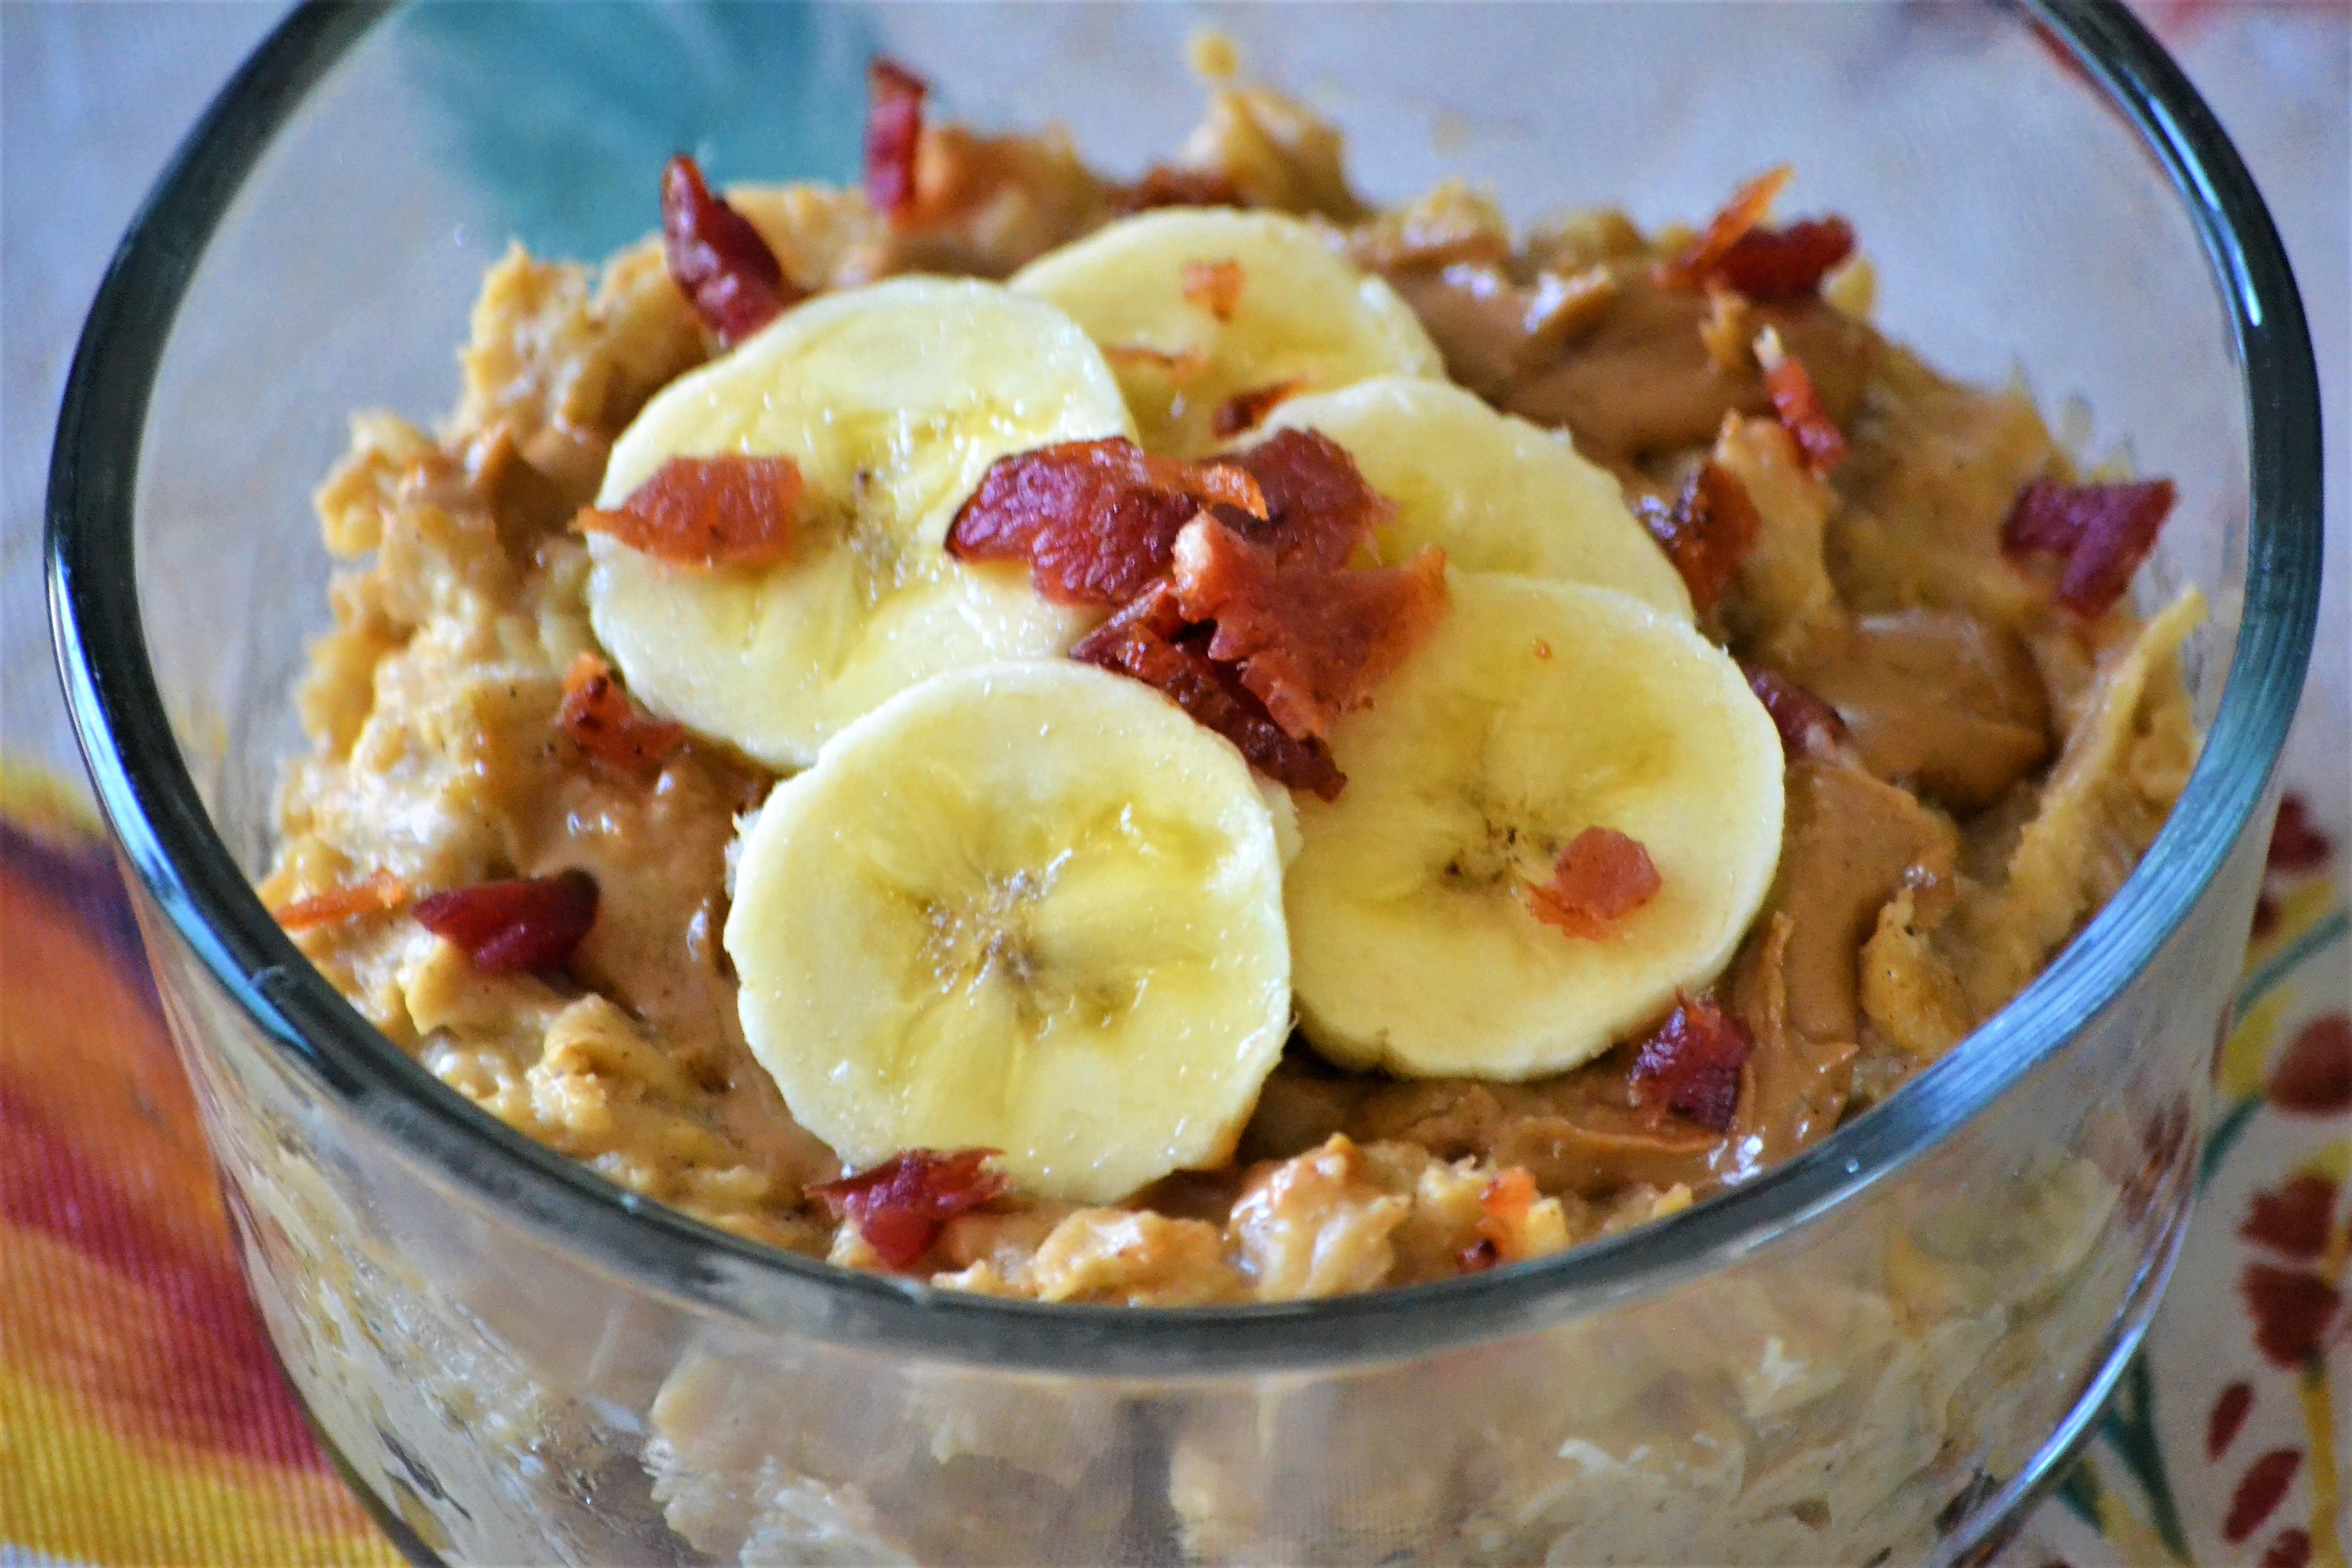 High-Protein Oatmeal Fit for the King